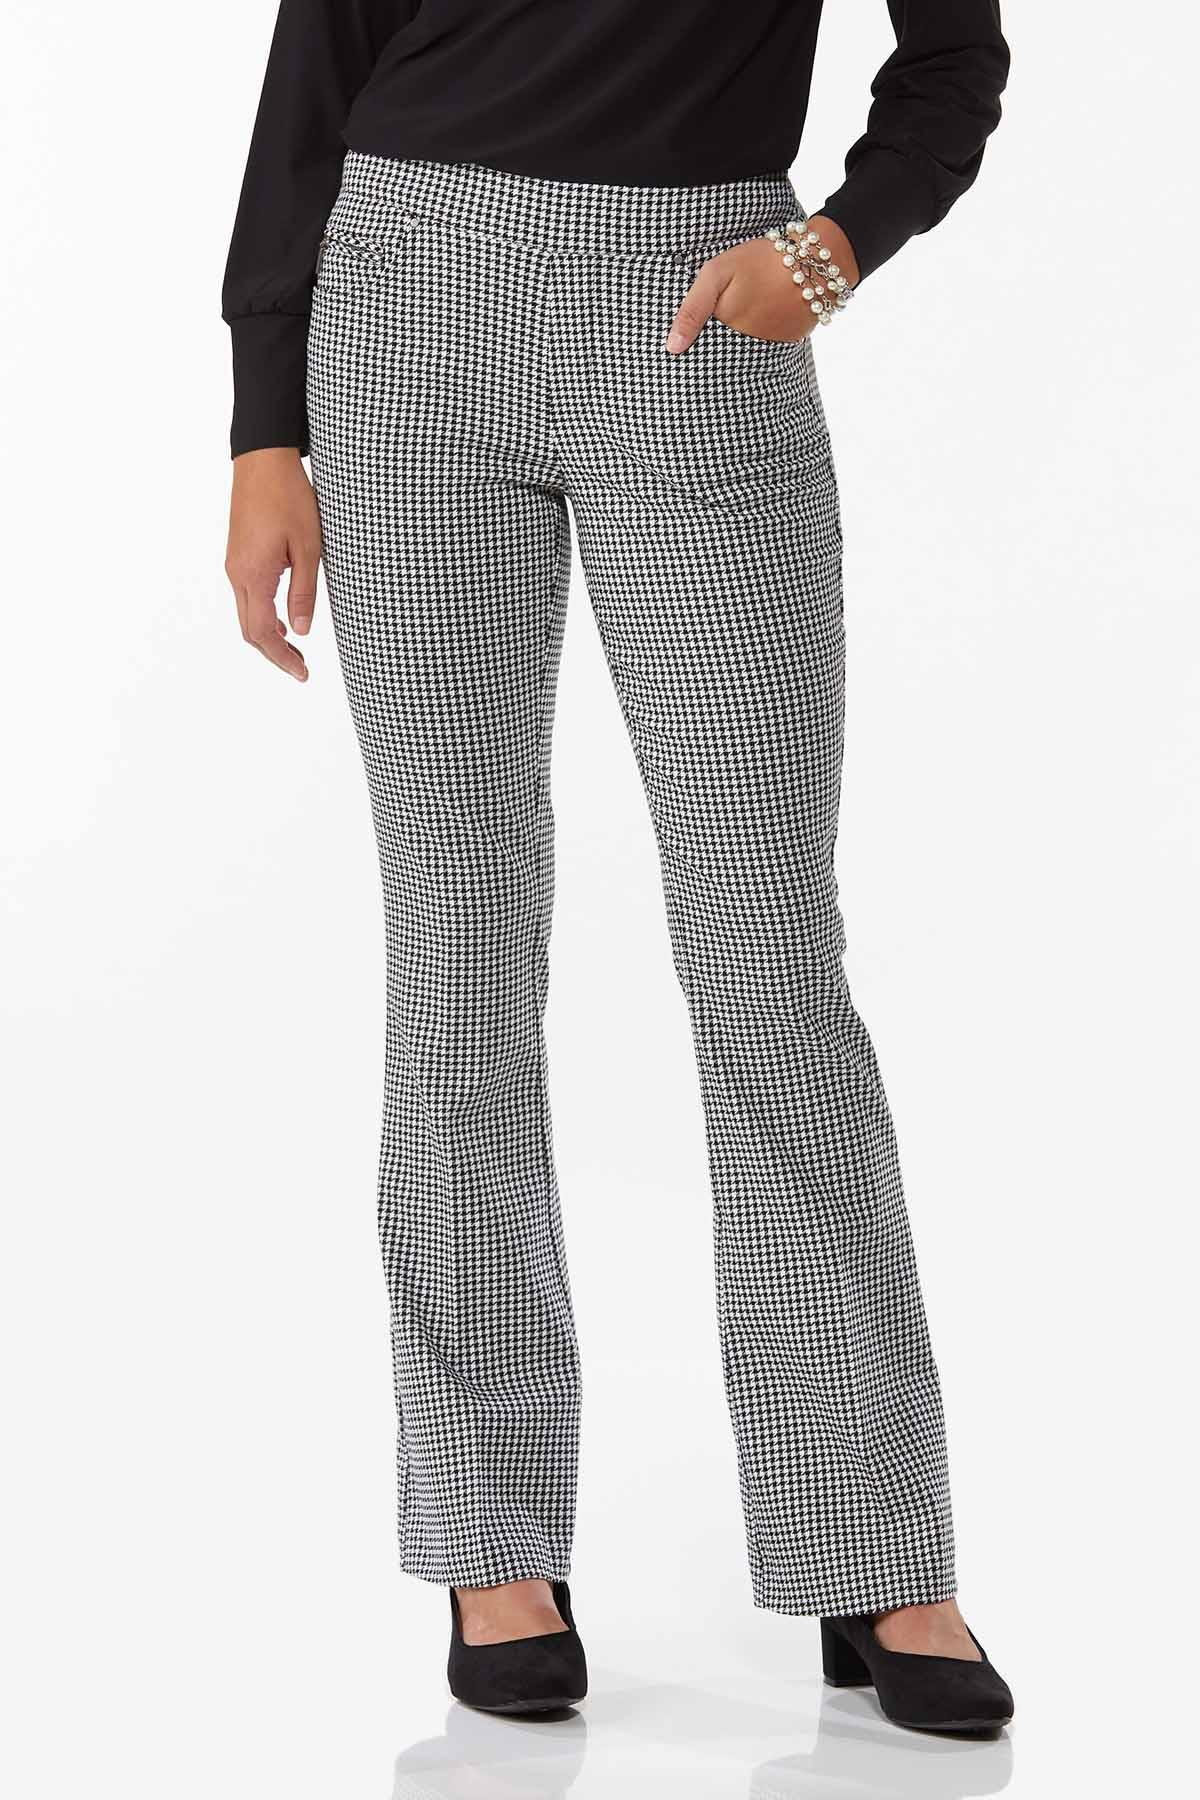 Houndstooth Pull-On Pants (Item #44756577)